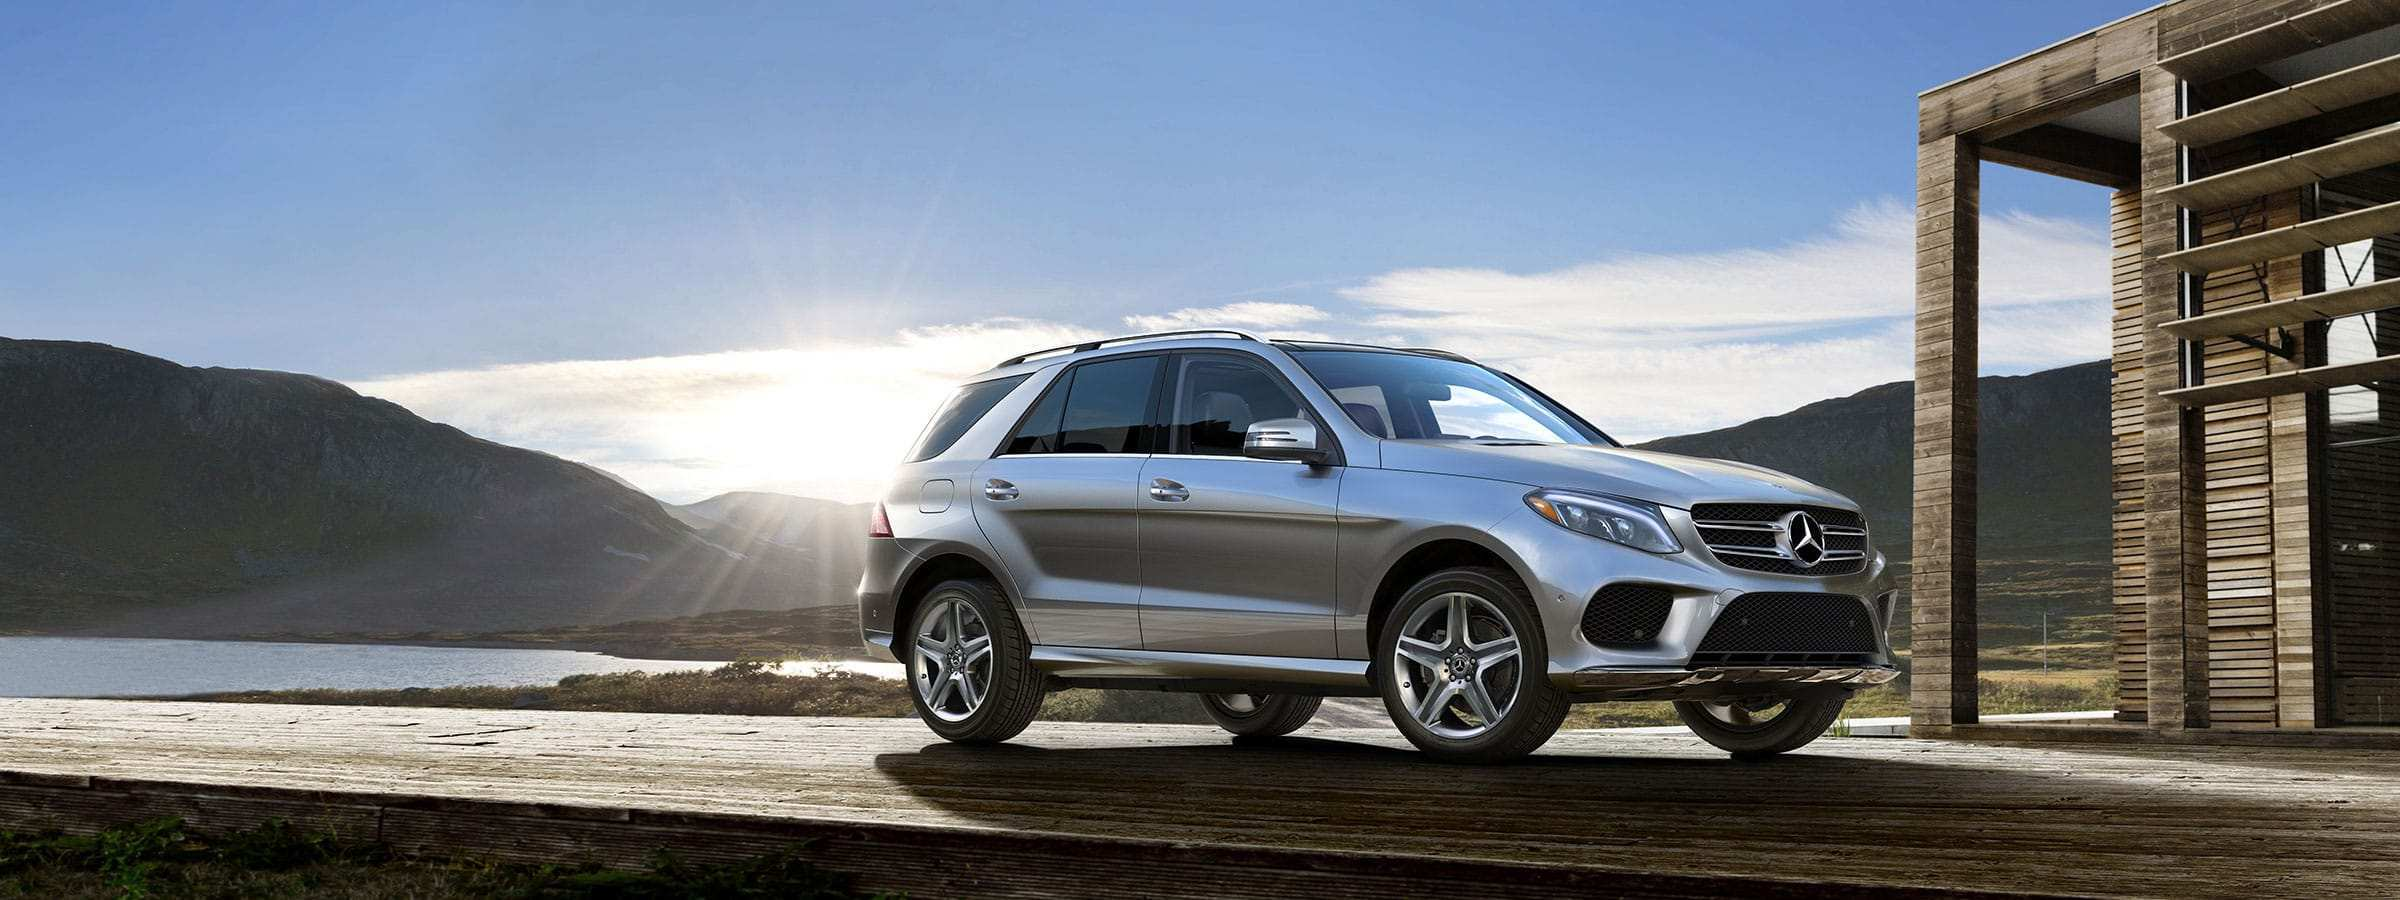 80 All New 2020 Mercedes ML Class 400 New Concept by 2020 Mercedes ML Class 400